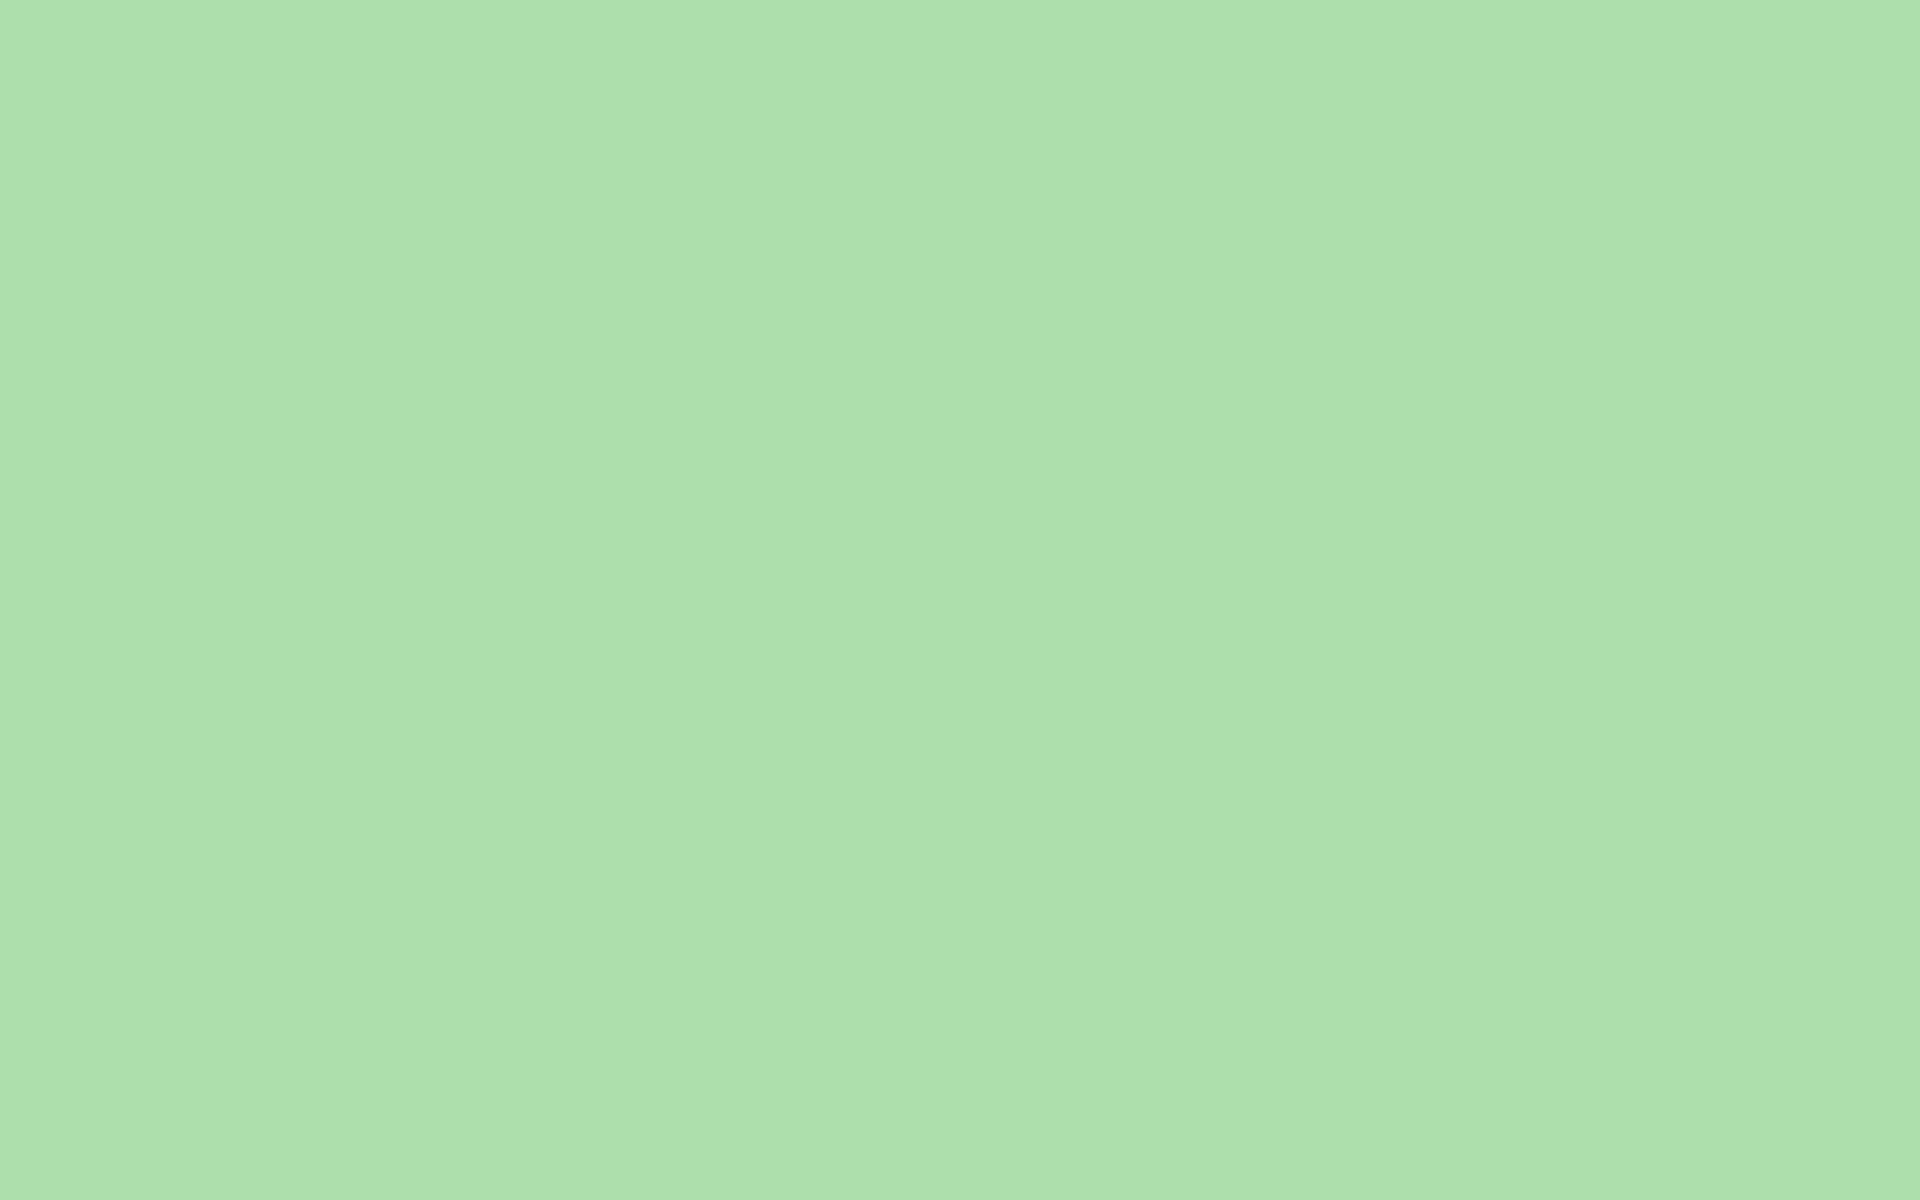 1920x1200-light-moss-green-solid-color-background.jpg